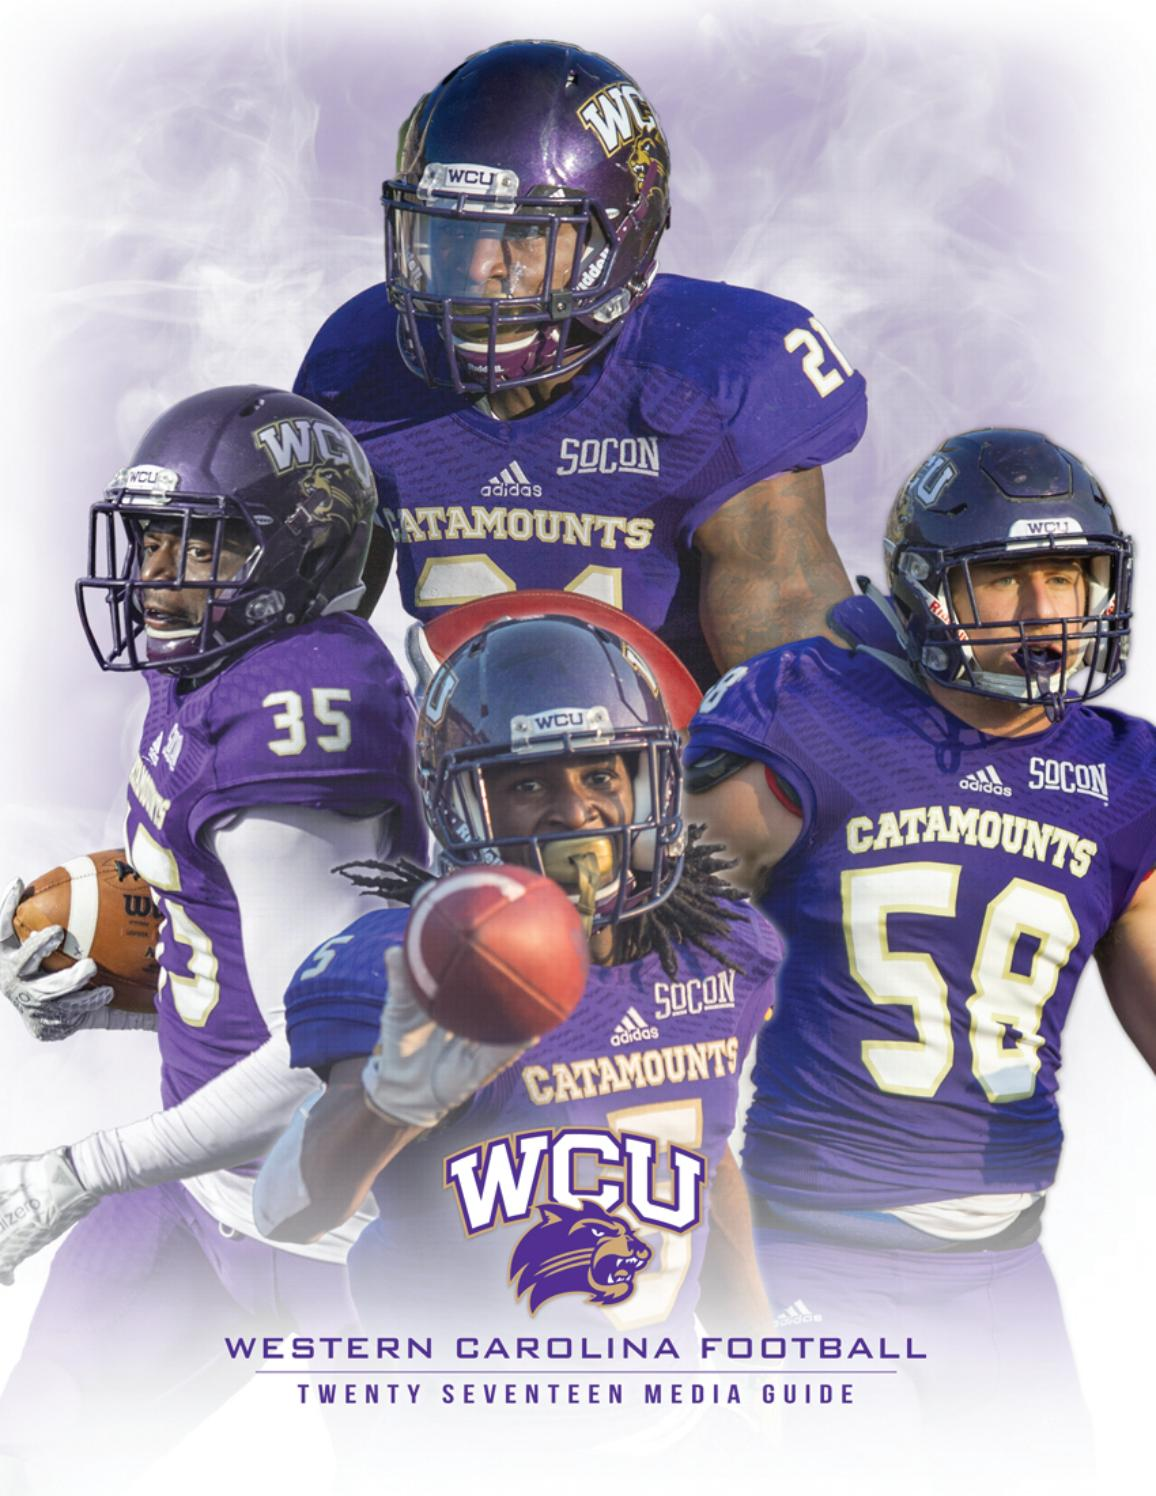 6b74f3c5 2017 Western Carolina Football Media Guide by Western Carolina University  Athletics - issuu